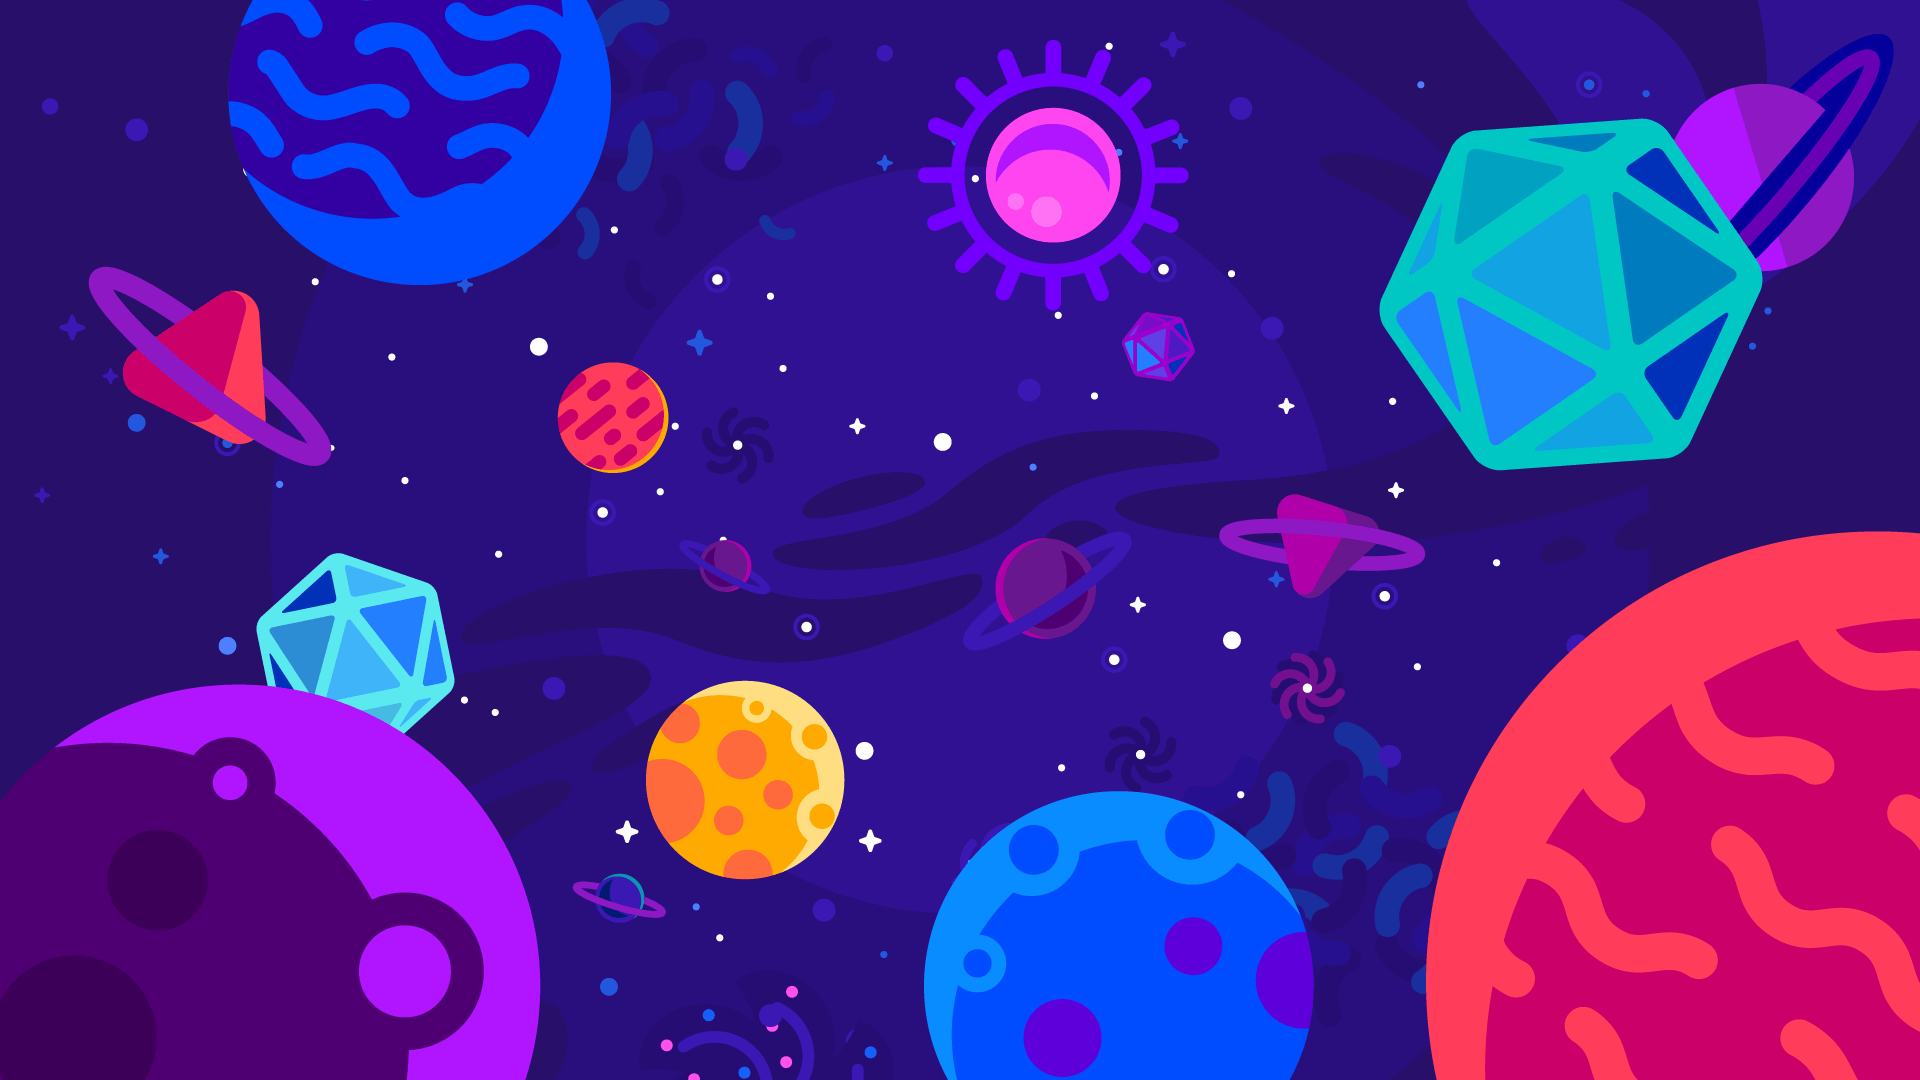 General 1920x1080 artwork stars planet space shapes